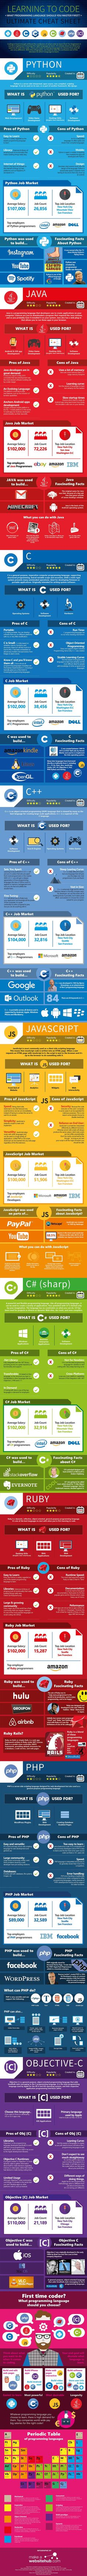 Should You Learn Python, C, or Ruby to Be a Top Coder? (Infographic) | Inc.com